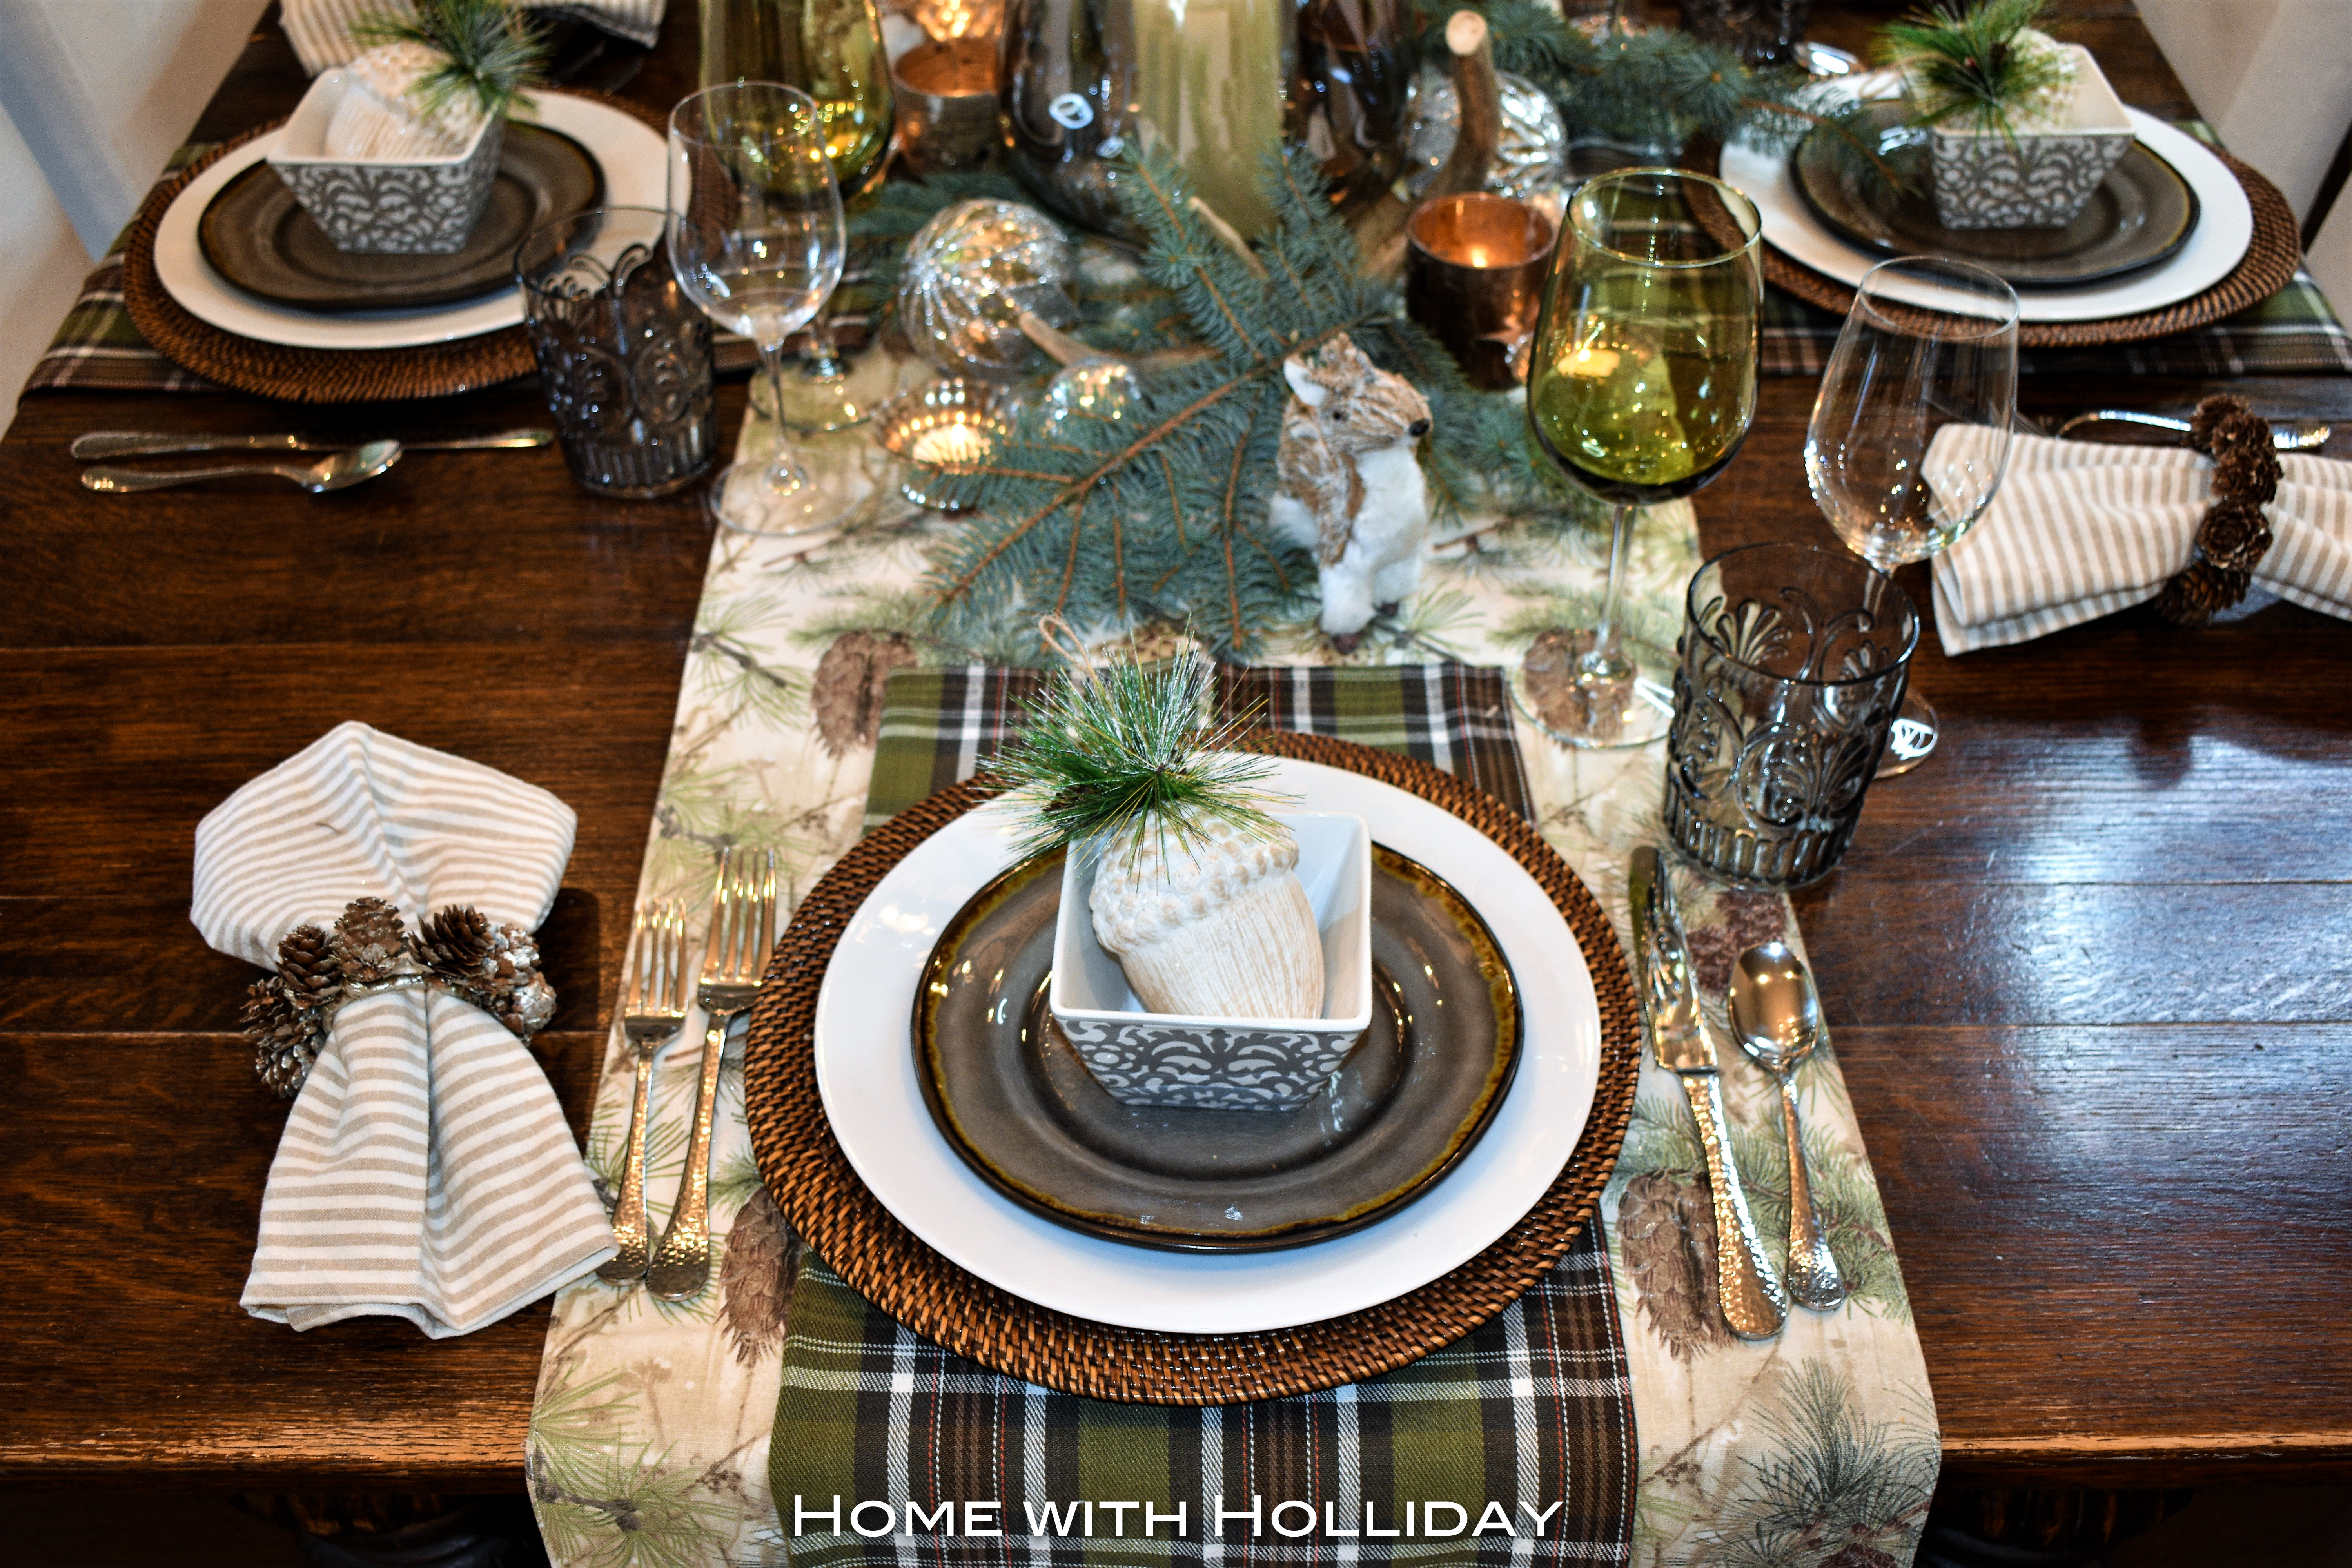 Place Setting for a Rustic Winter Christmas Table Setting